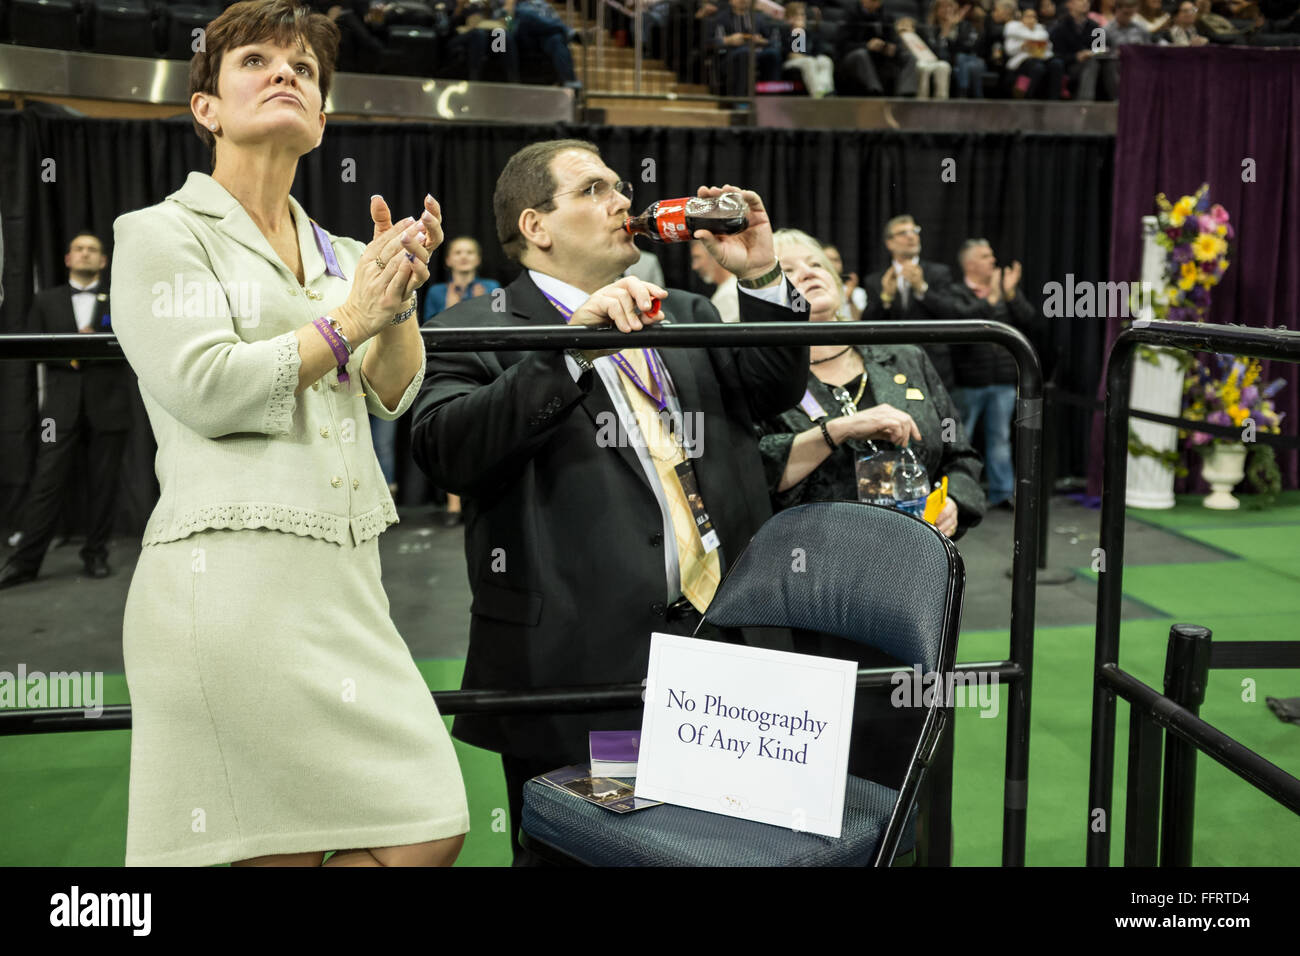 New York, USA. 16th February, 2016. Westminster Kennel Club officials on press risers during the Junior Division Stock Photo